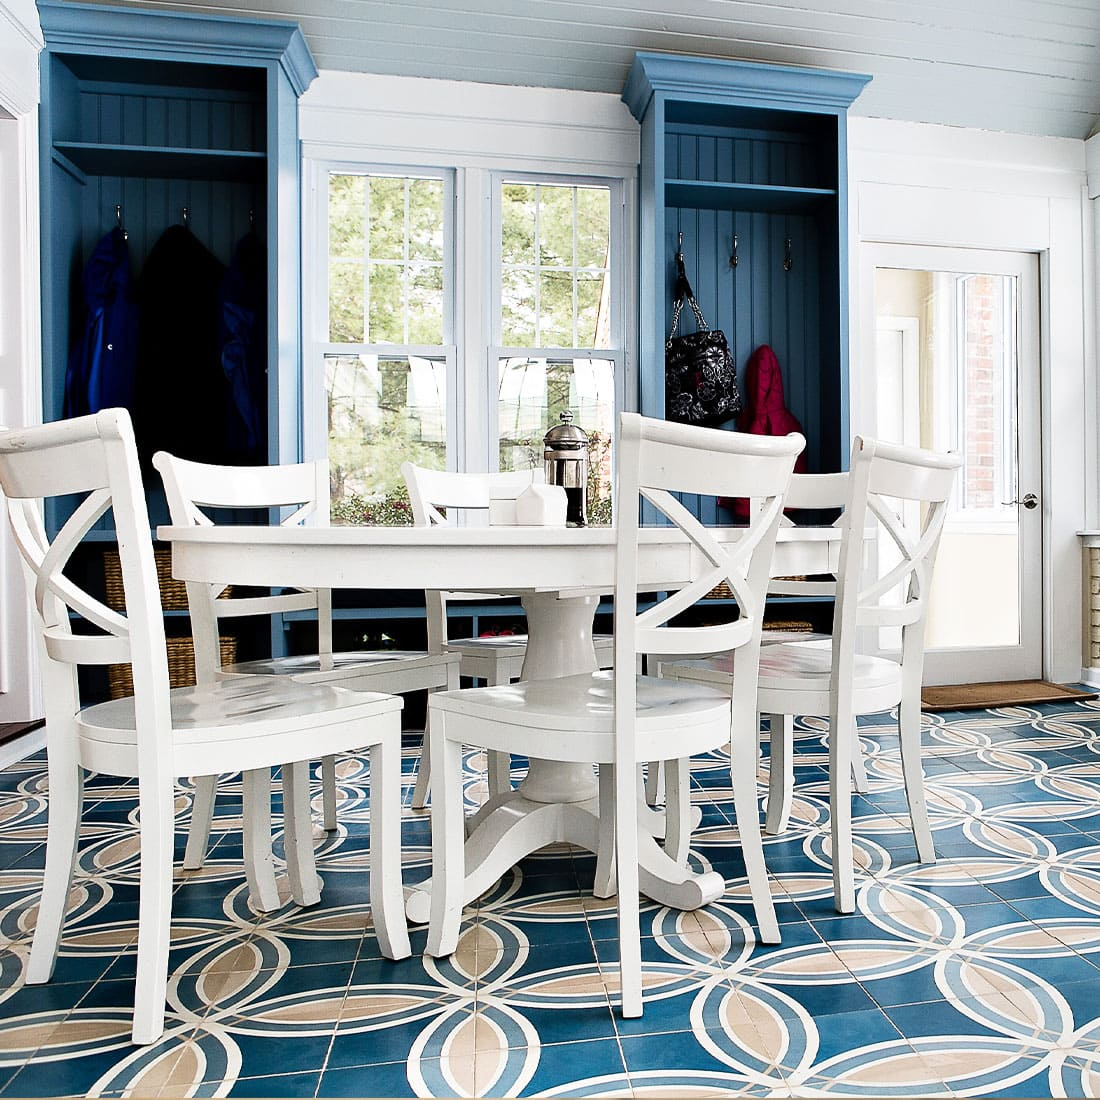 White table set contrast blue and yellow pattern tile in sunroom